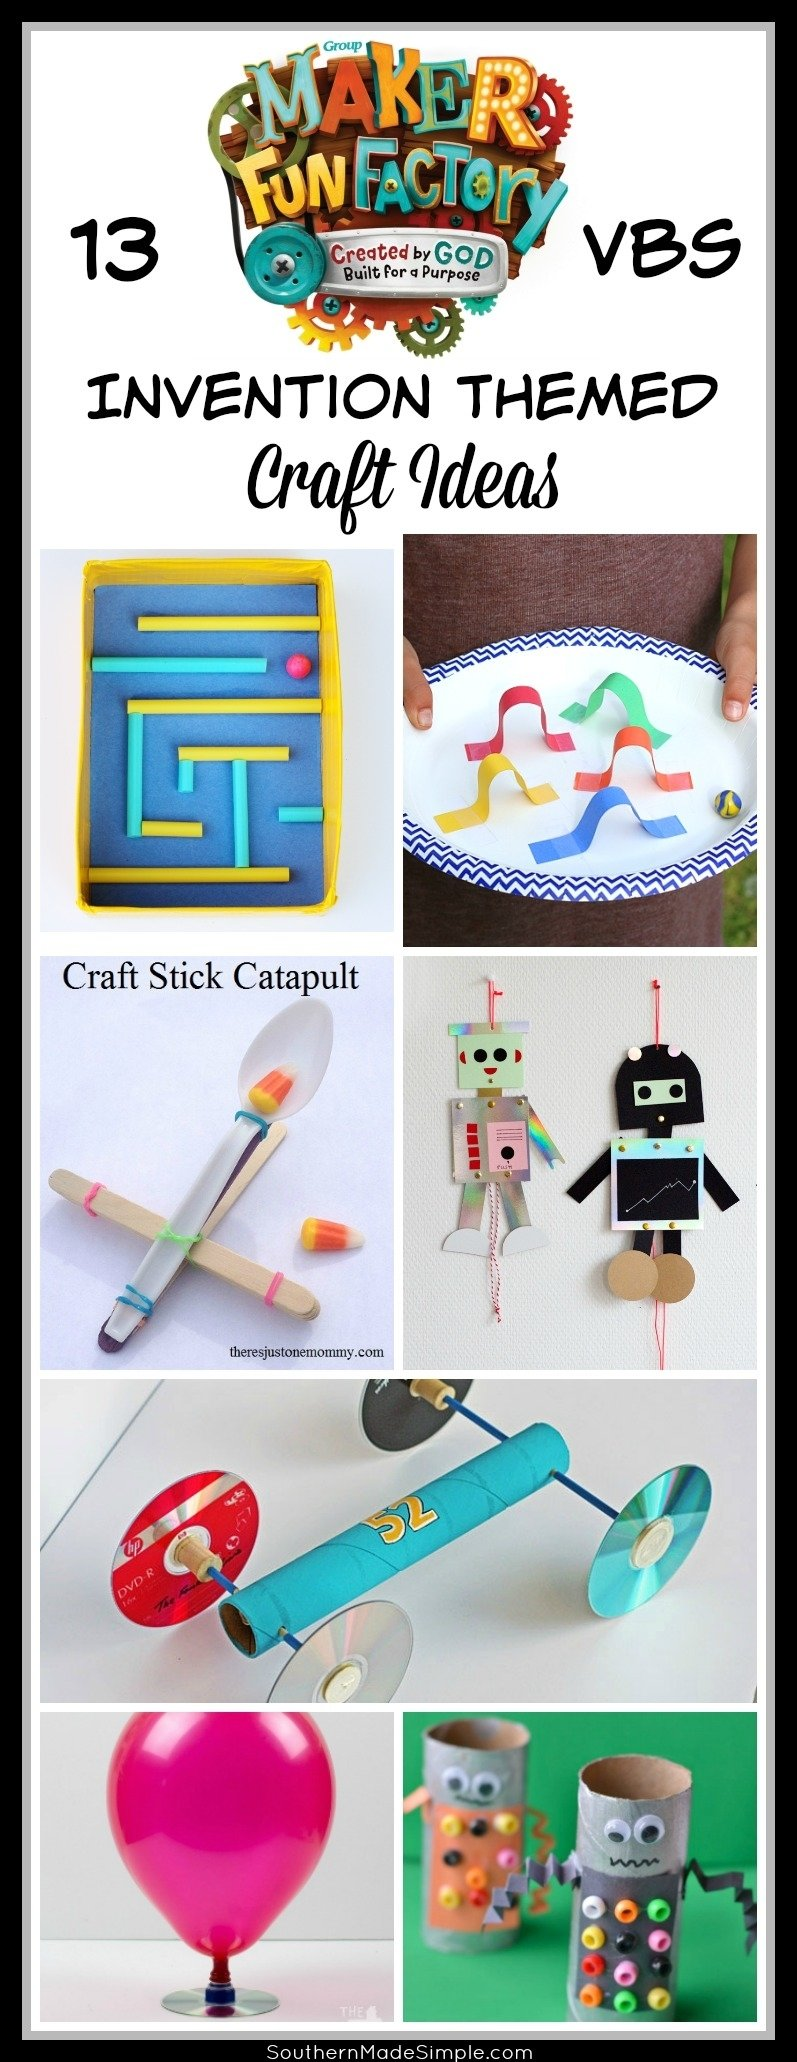 10 Awesome Vacation Bible School Crafts Ideas maker fun factory vbs craft ideas robot craft and vacation bible 2020